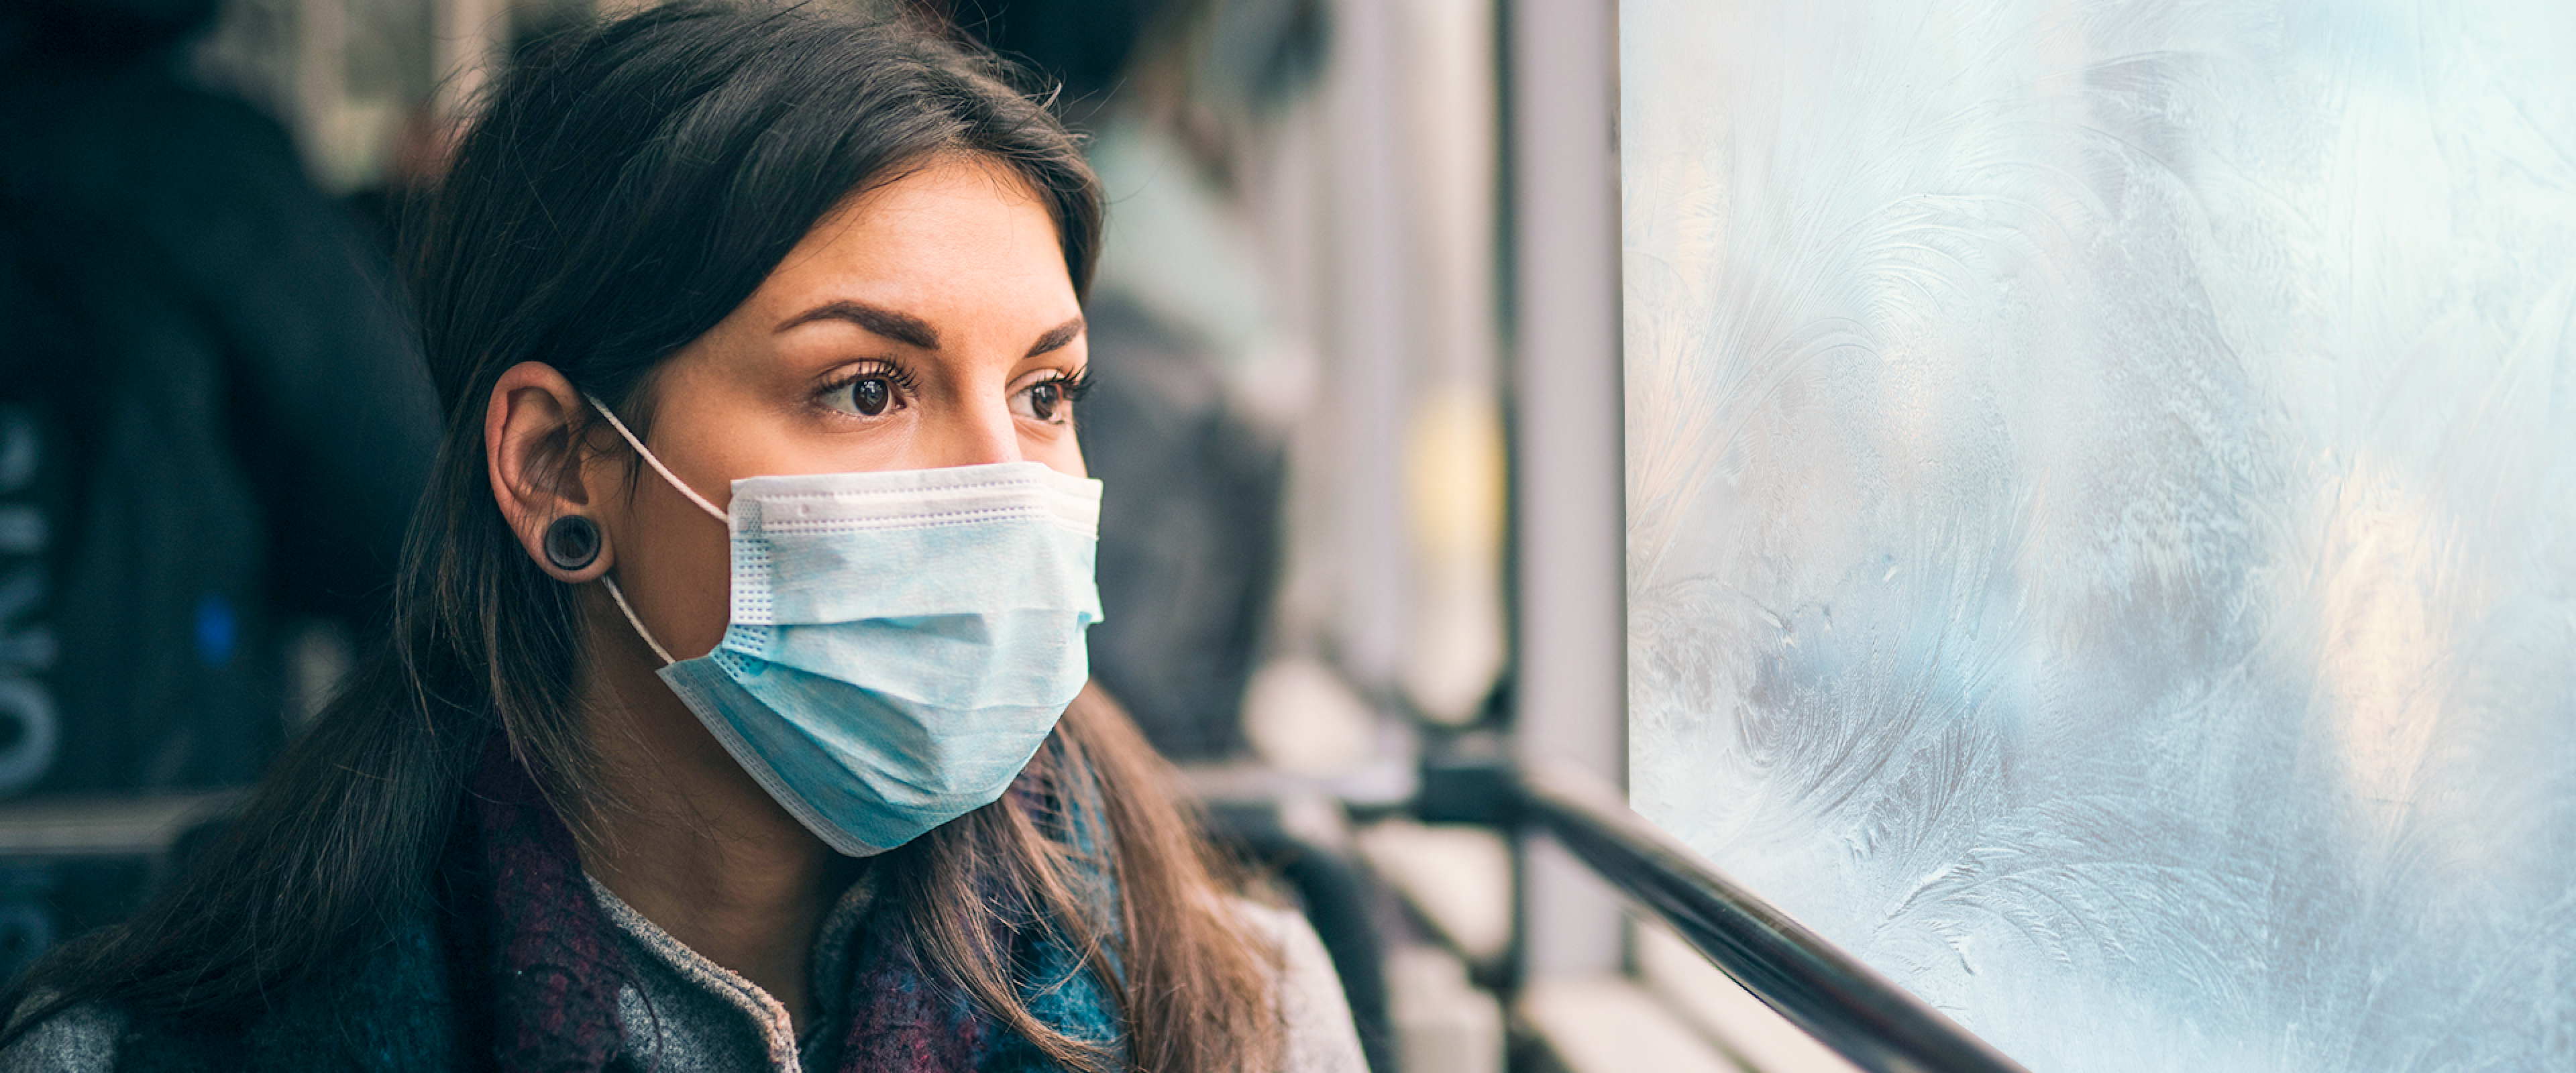 Young lady with winter coat and mask looking out a bus window.